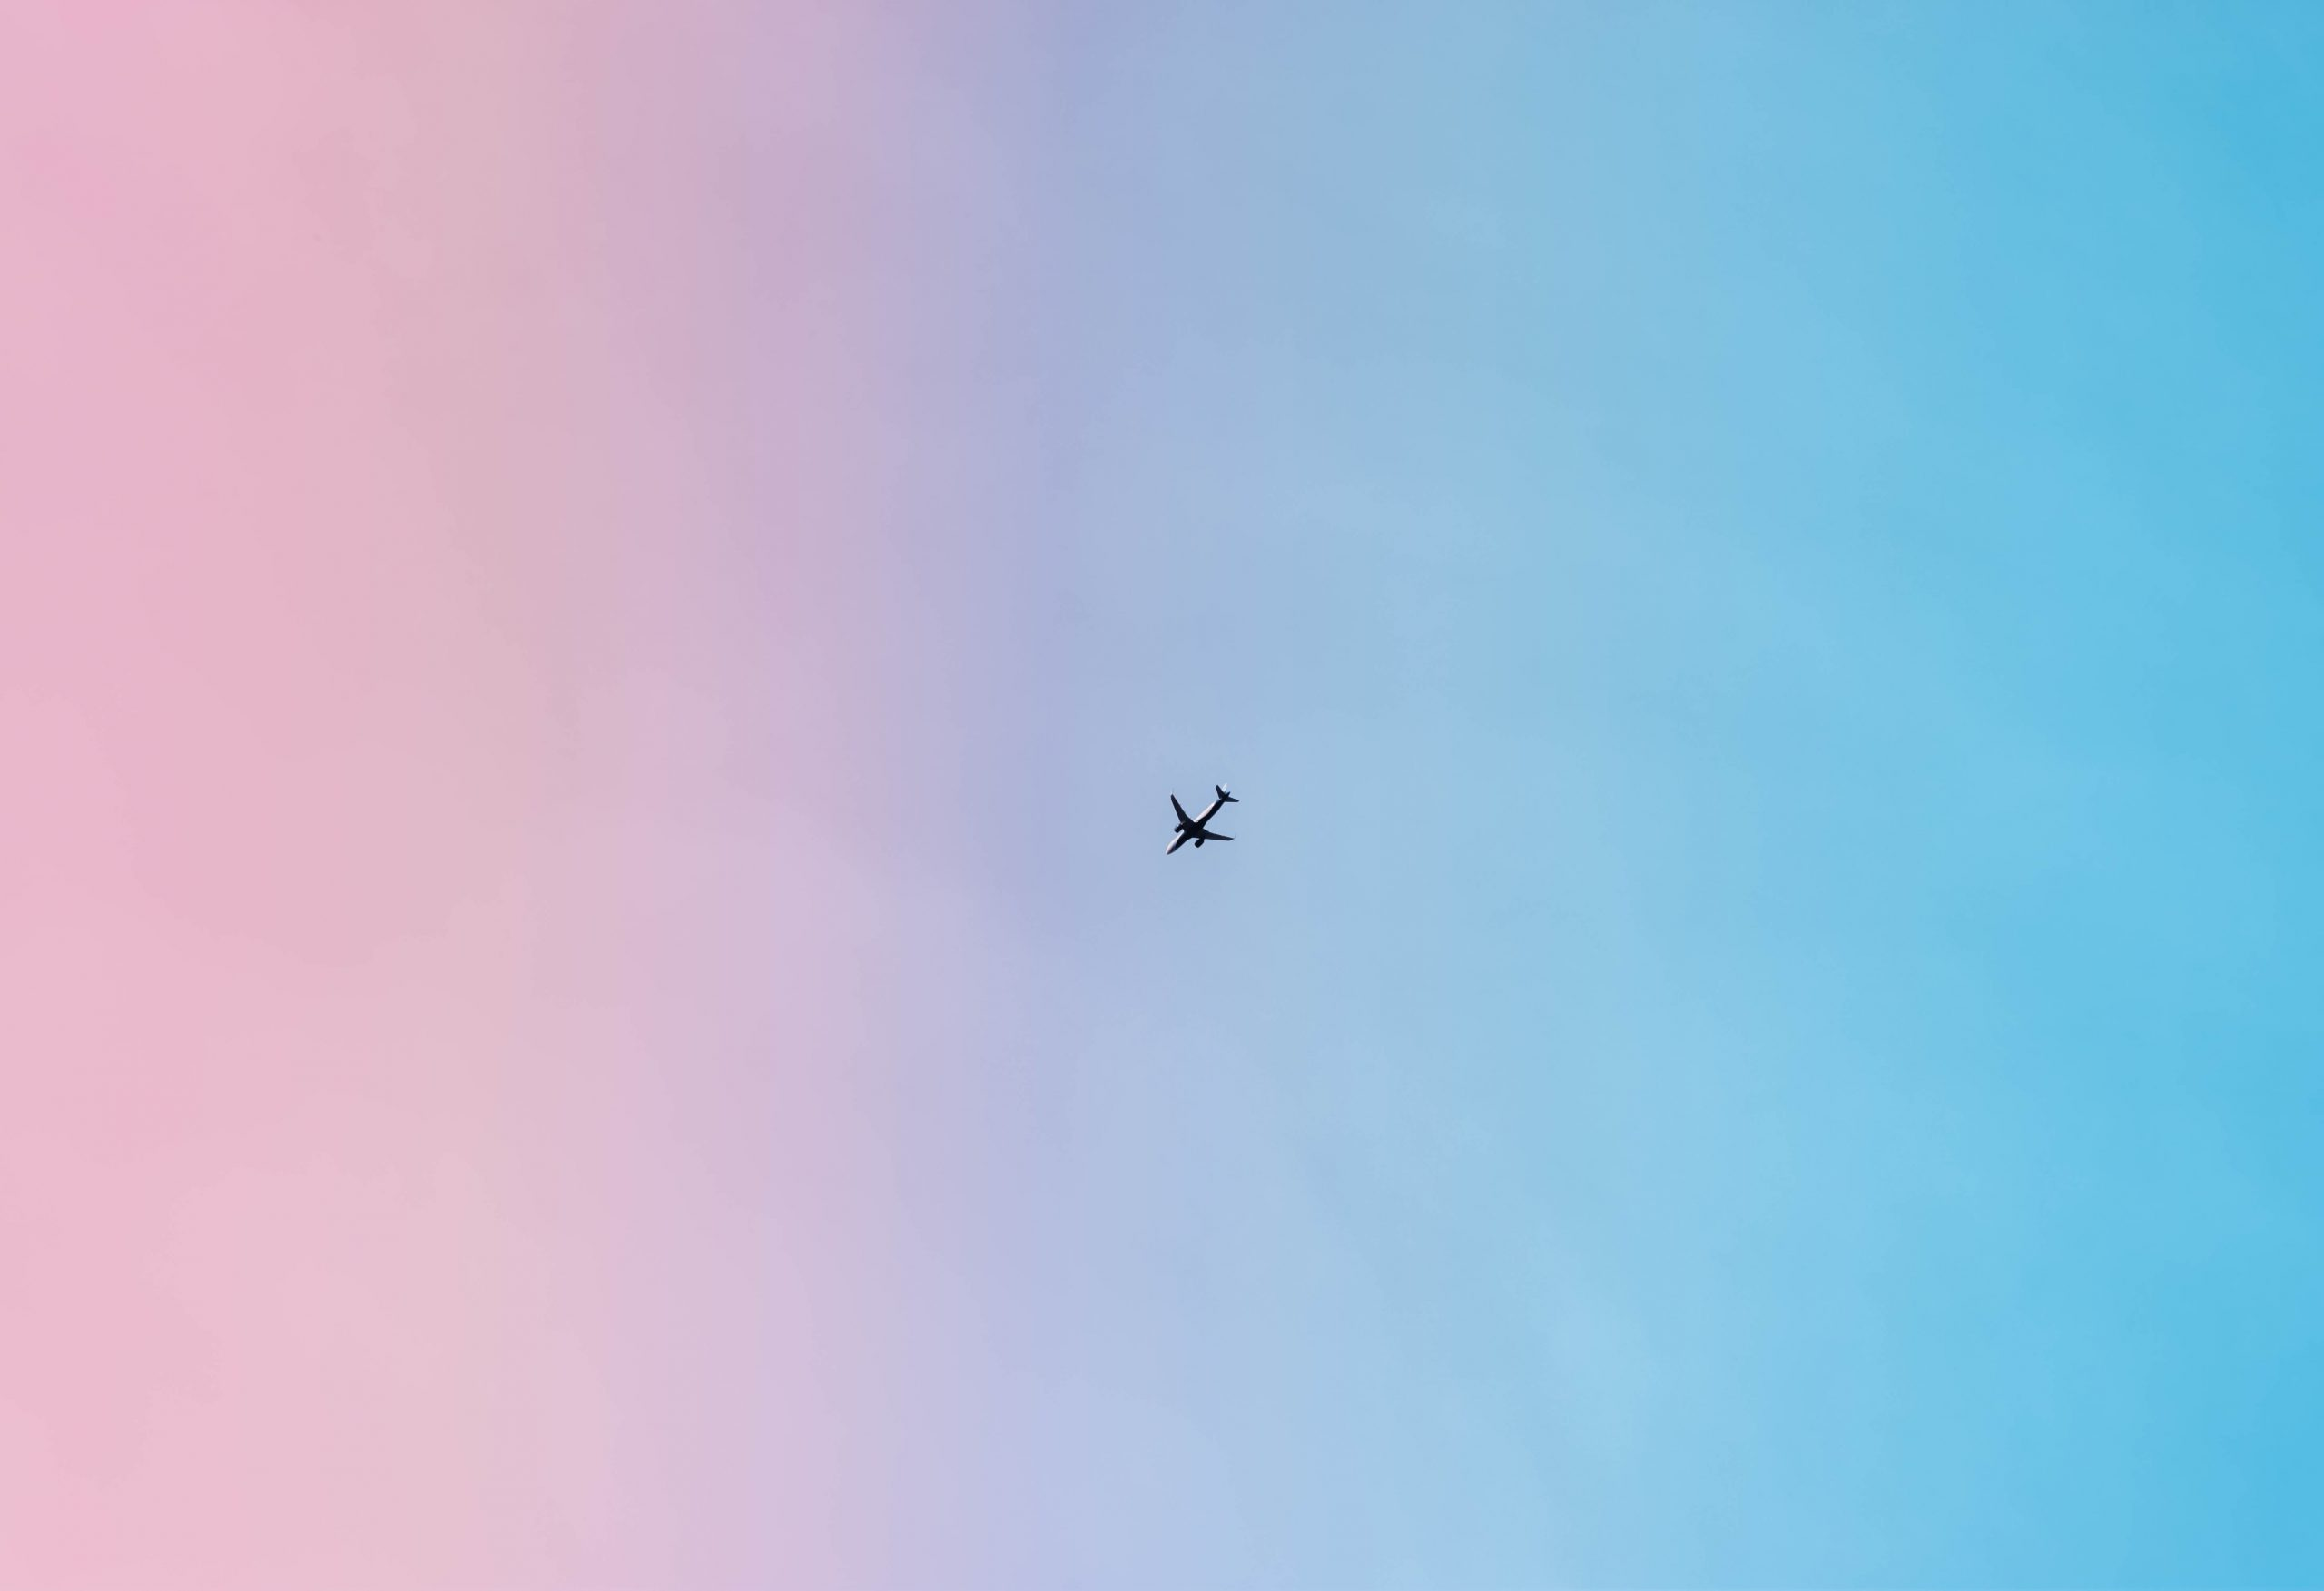 An airplane in sky